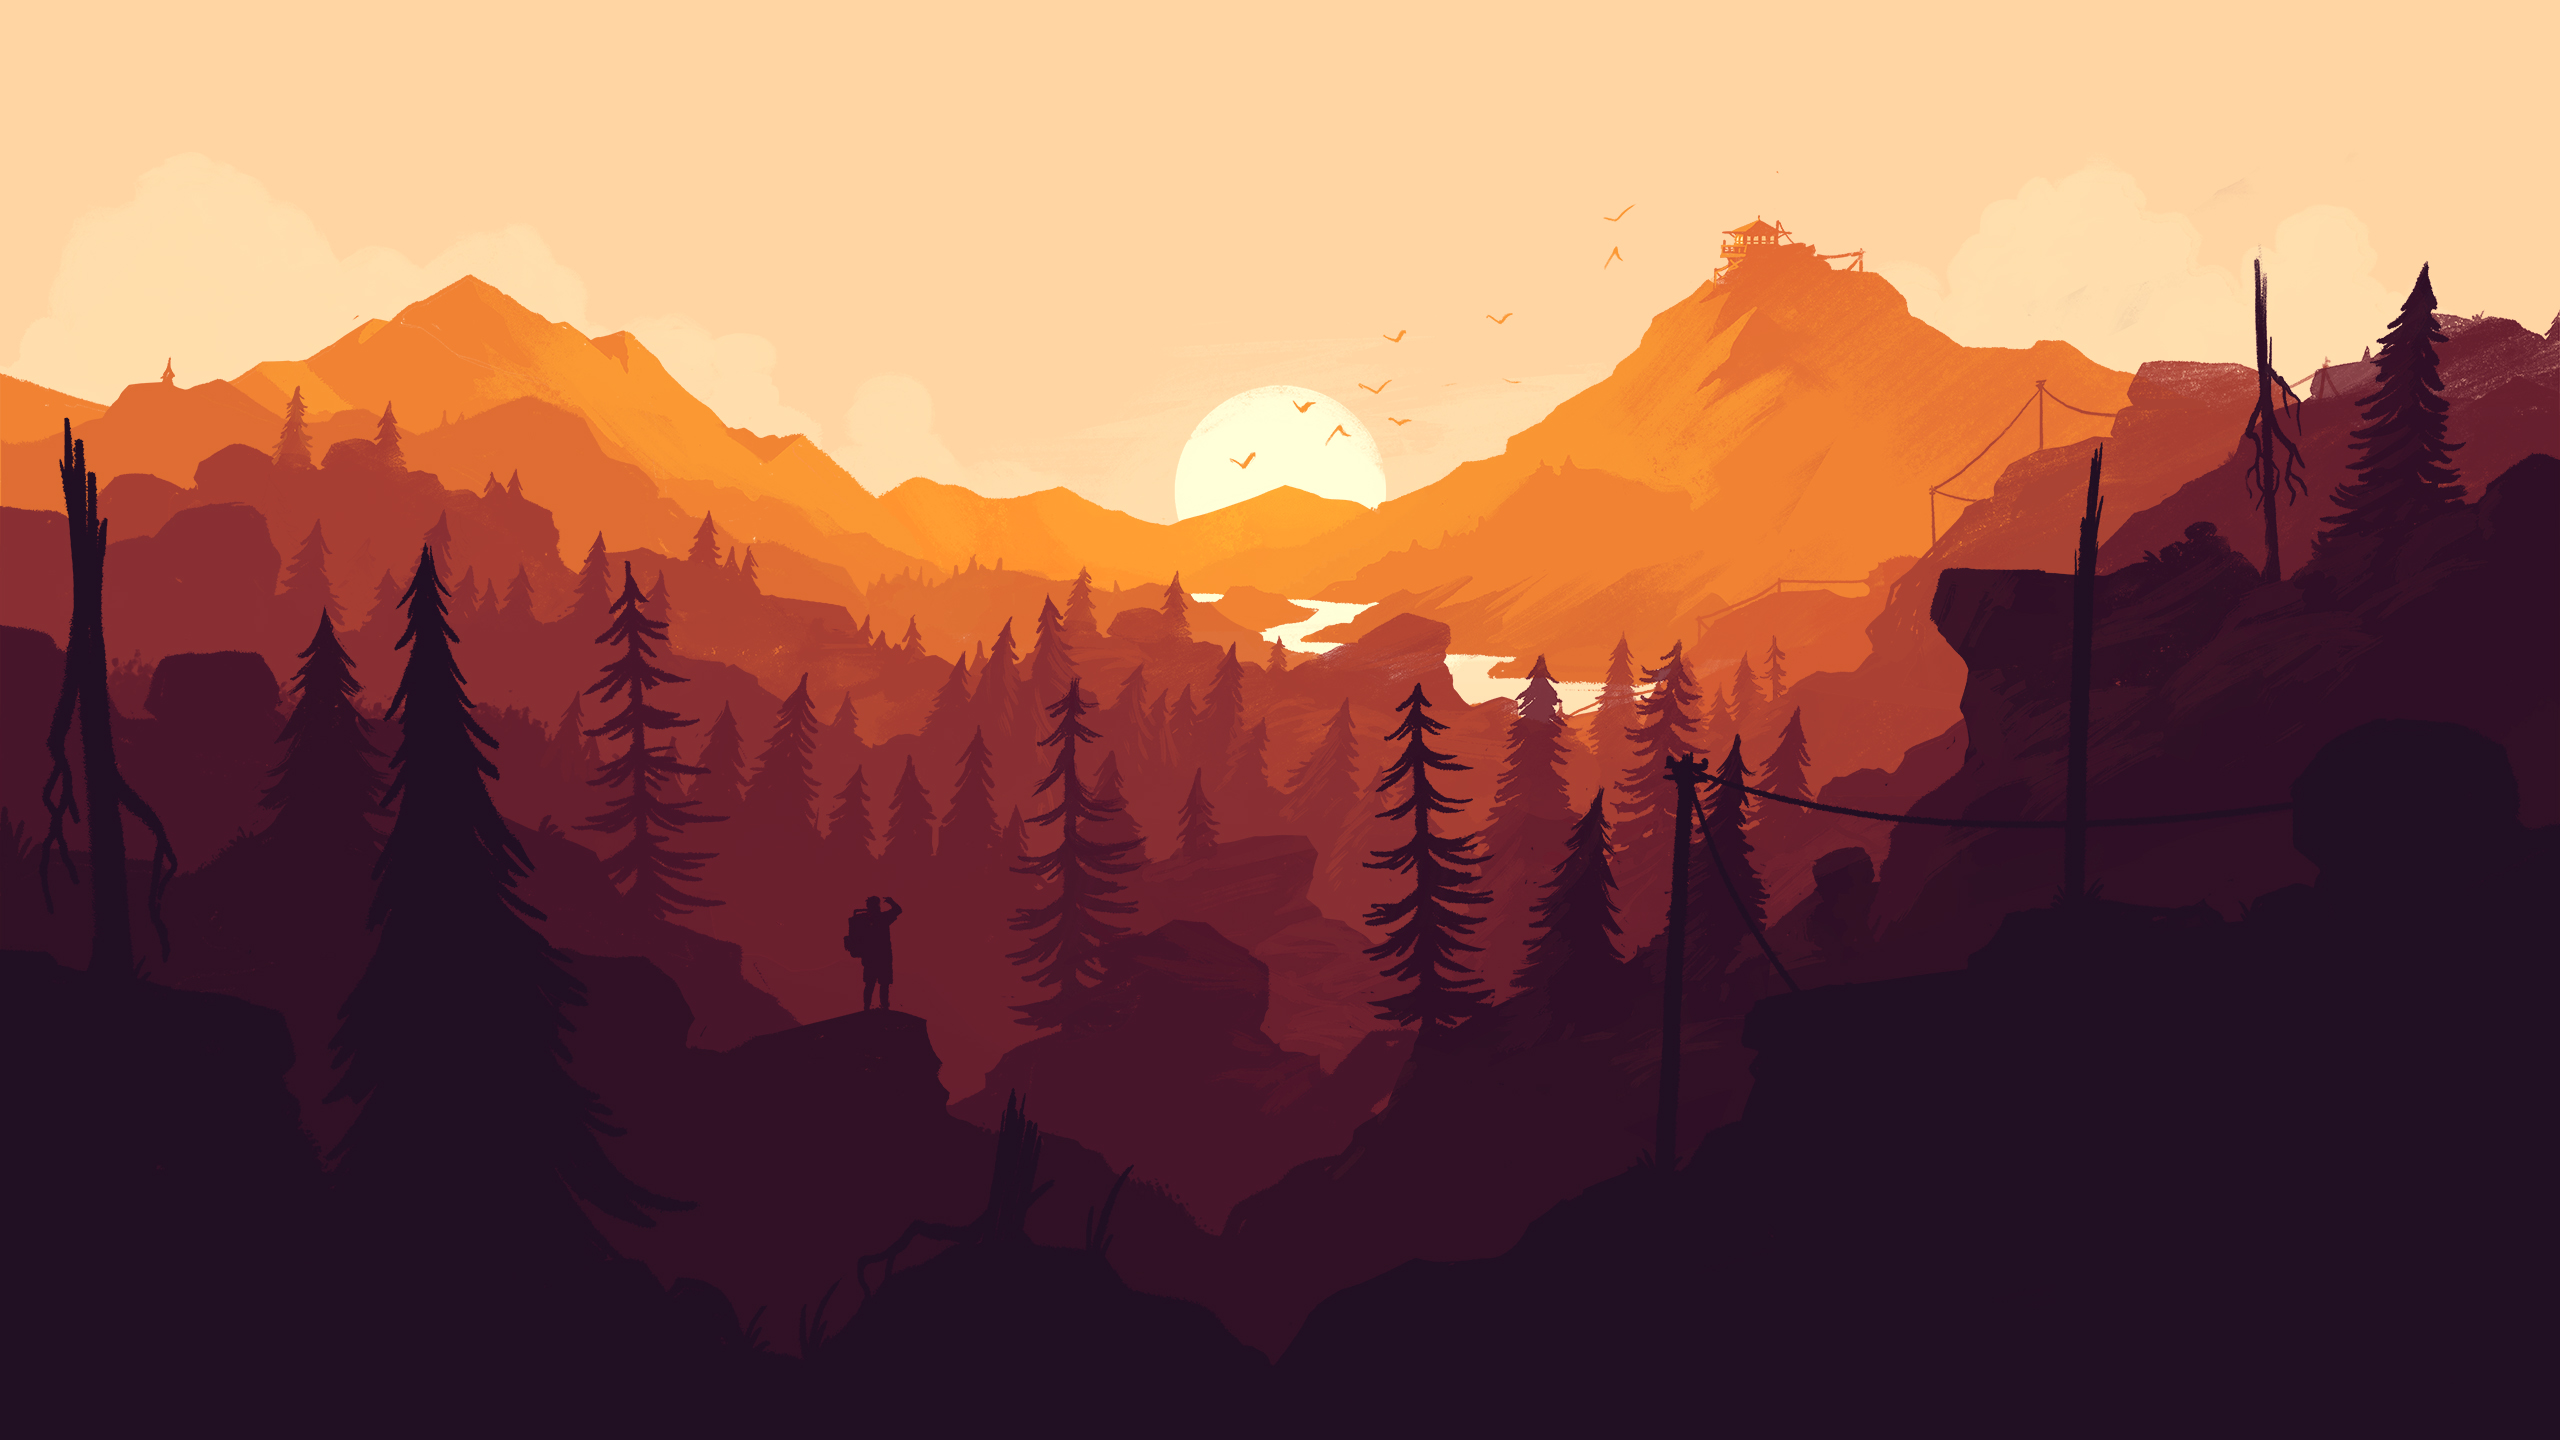 Firewatch Wallpaper desktop 2560x1440 yellow